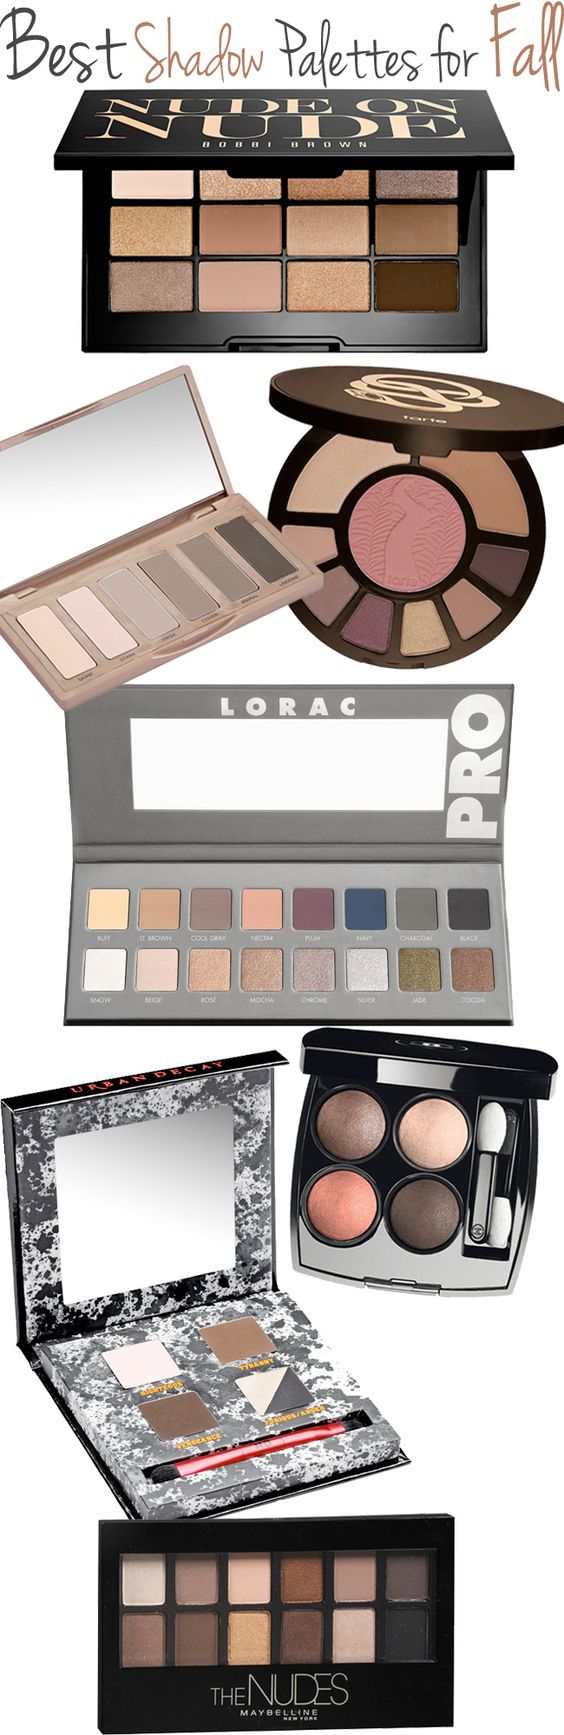 Best eyeshadow palettes for fall find the top beauty and cosmetics stores online via http